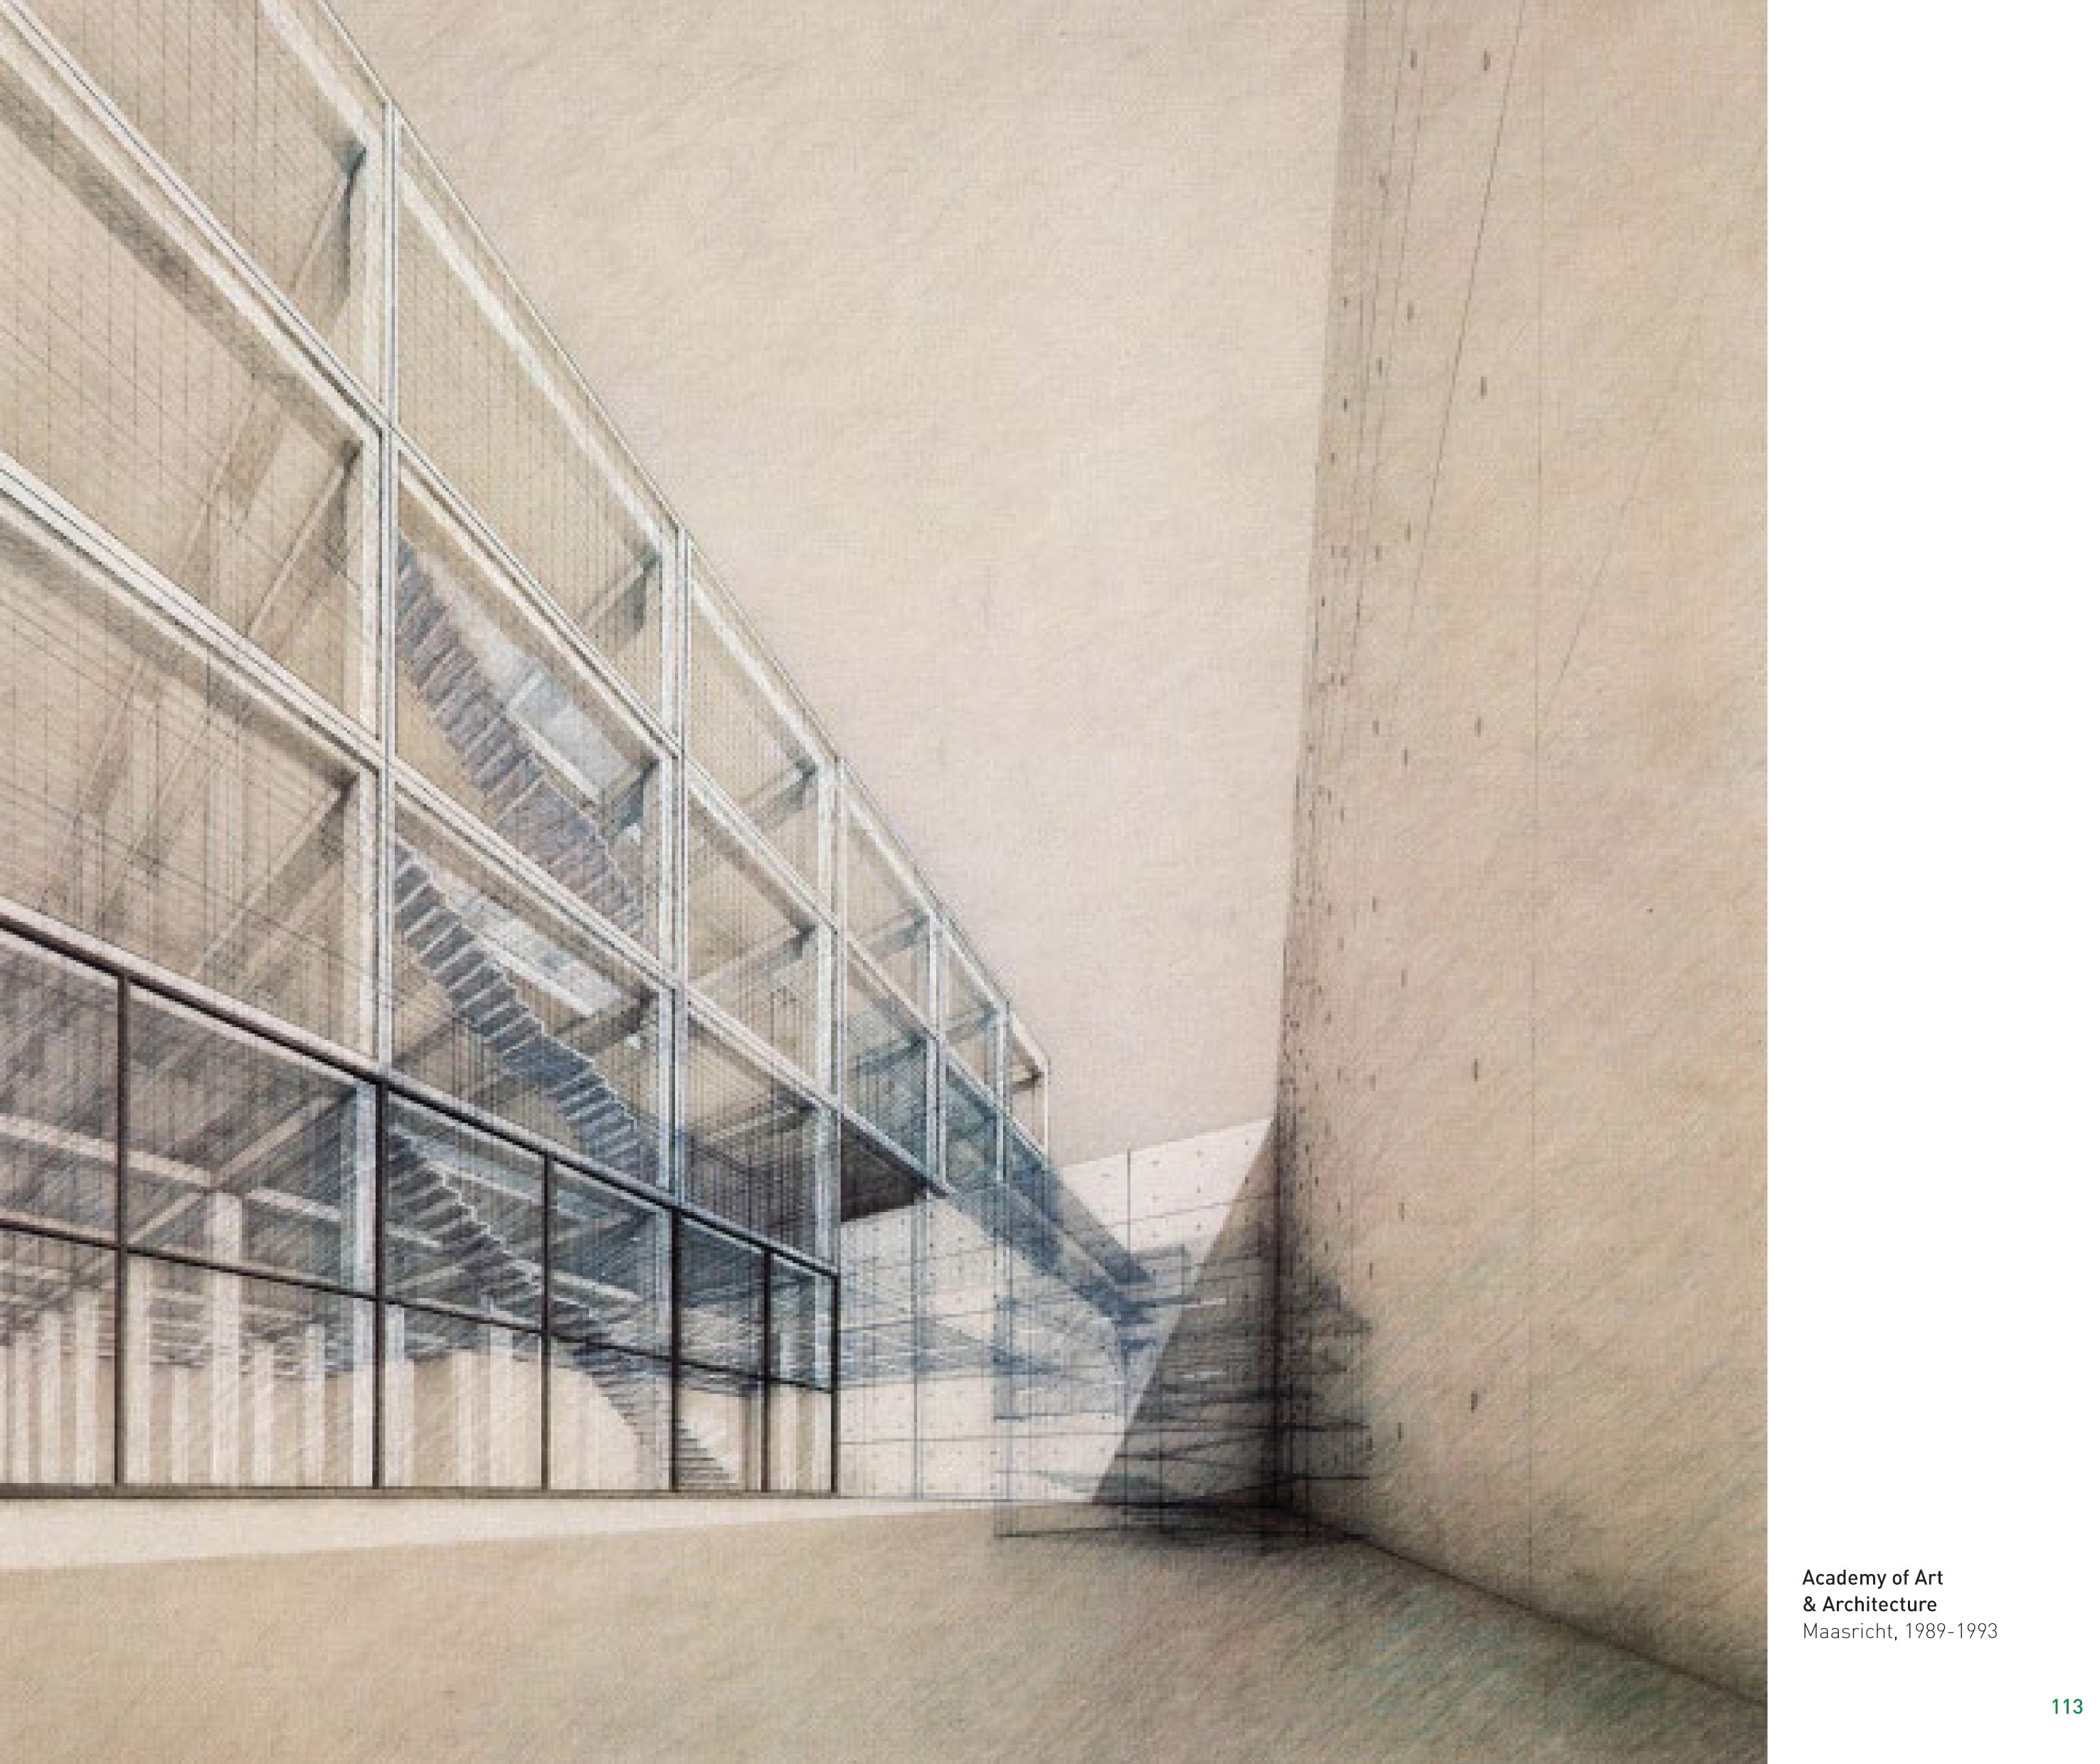 Inspiration and Process in Architecture - Wiel Arets